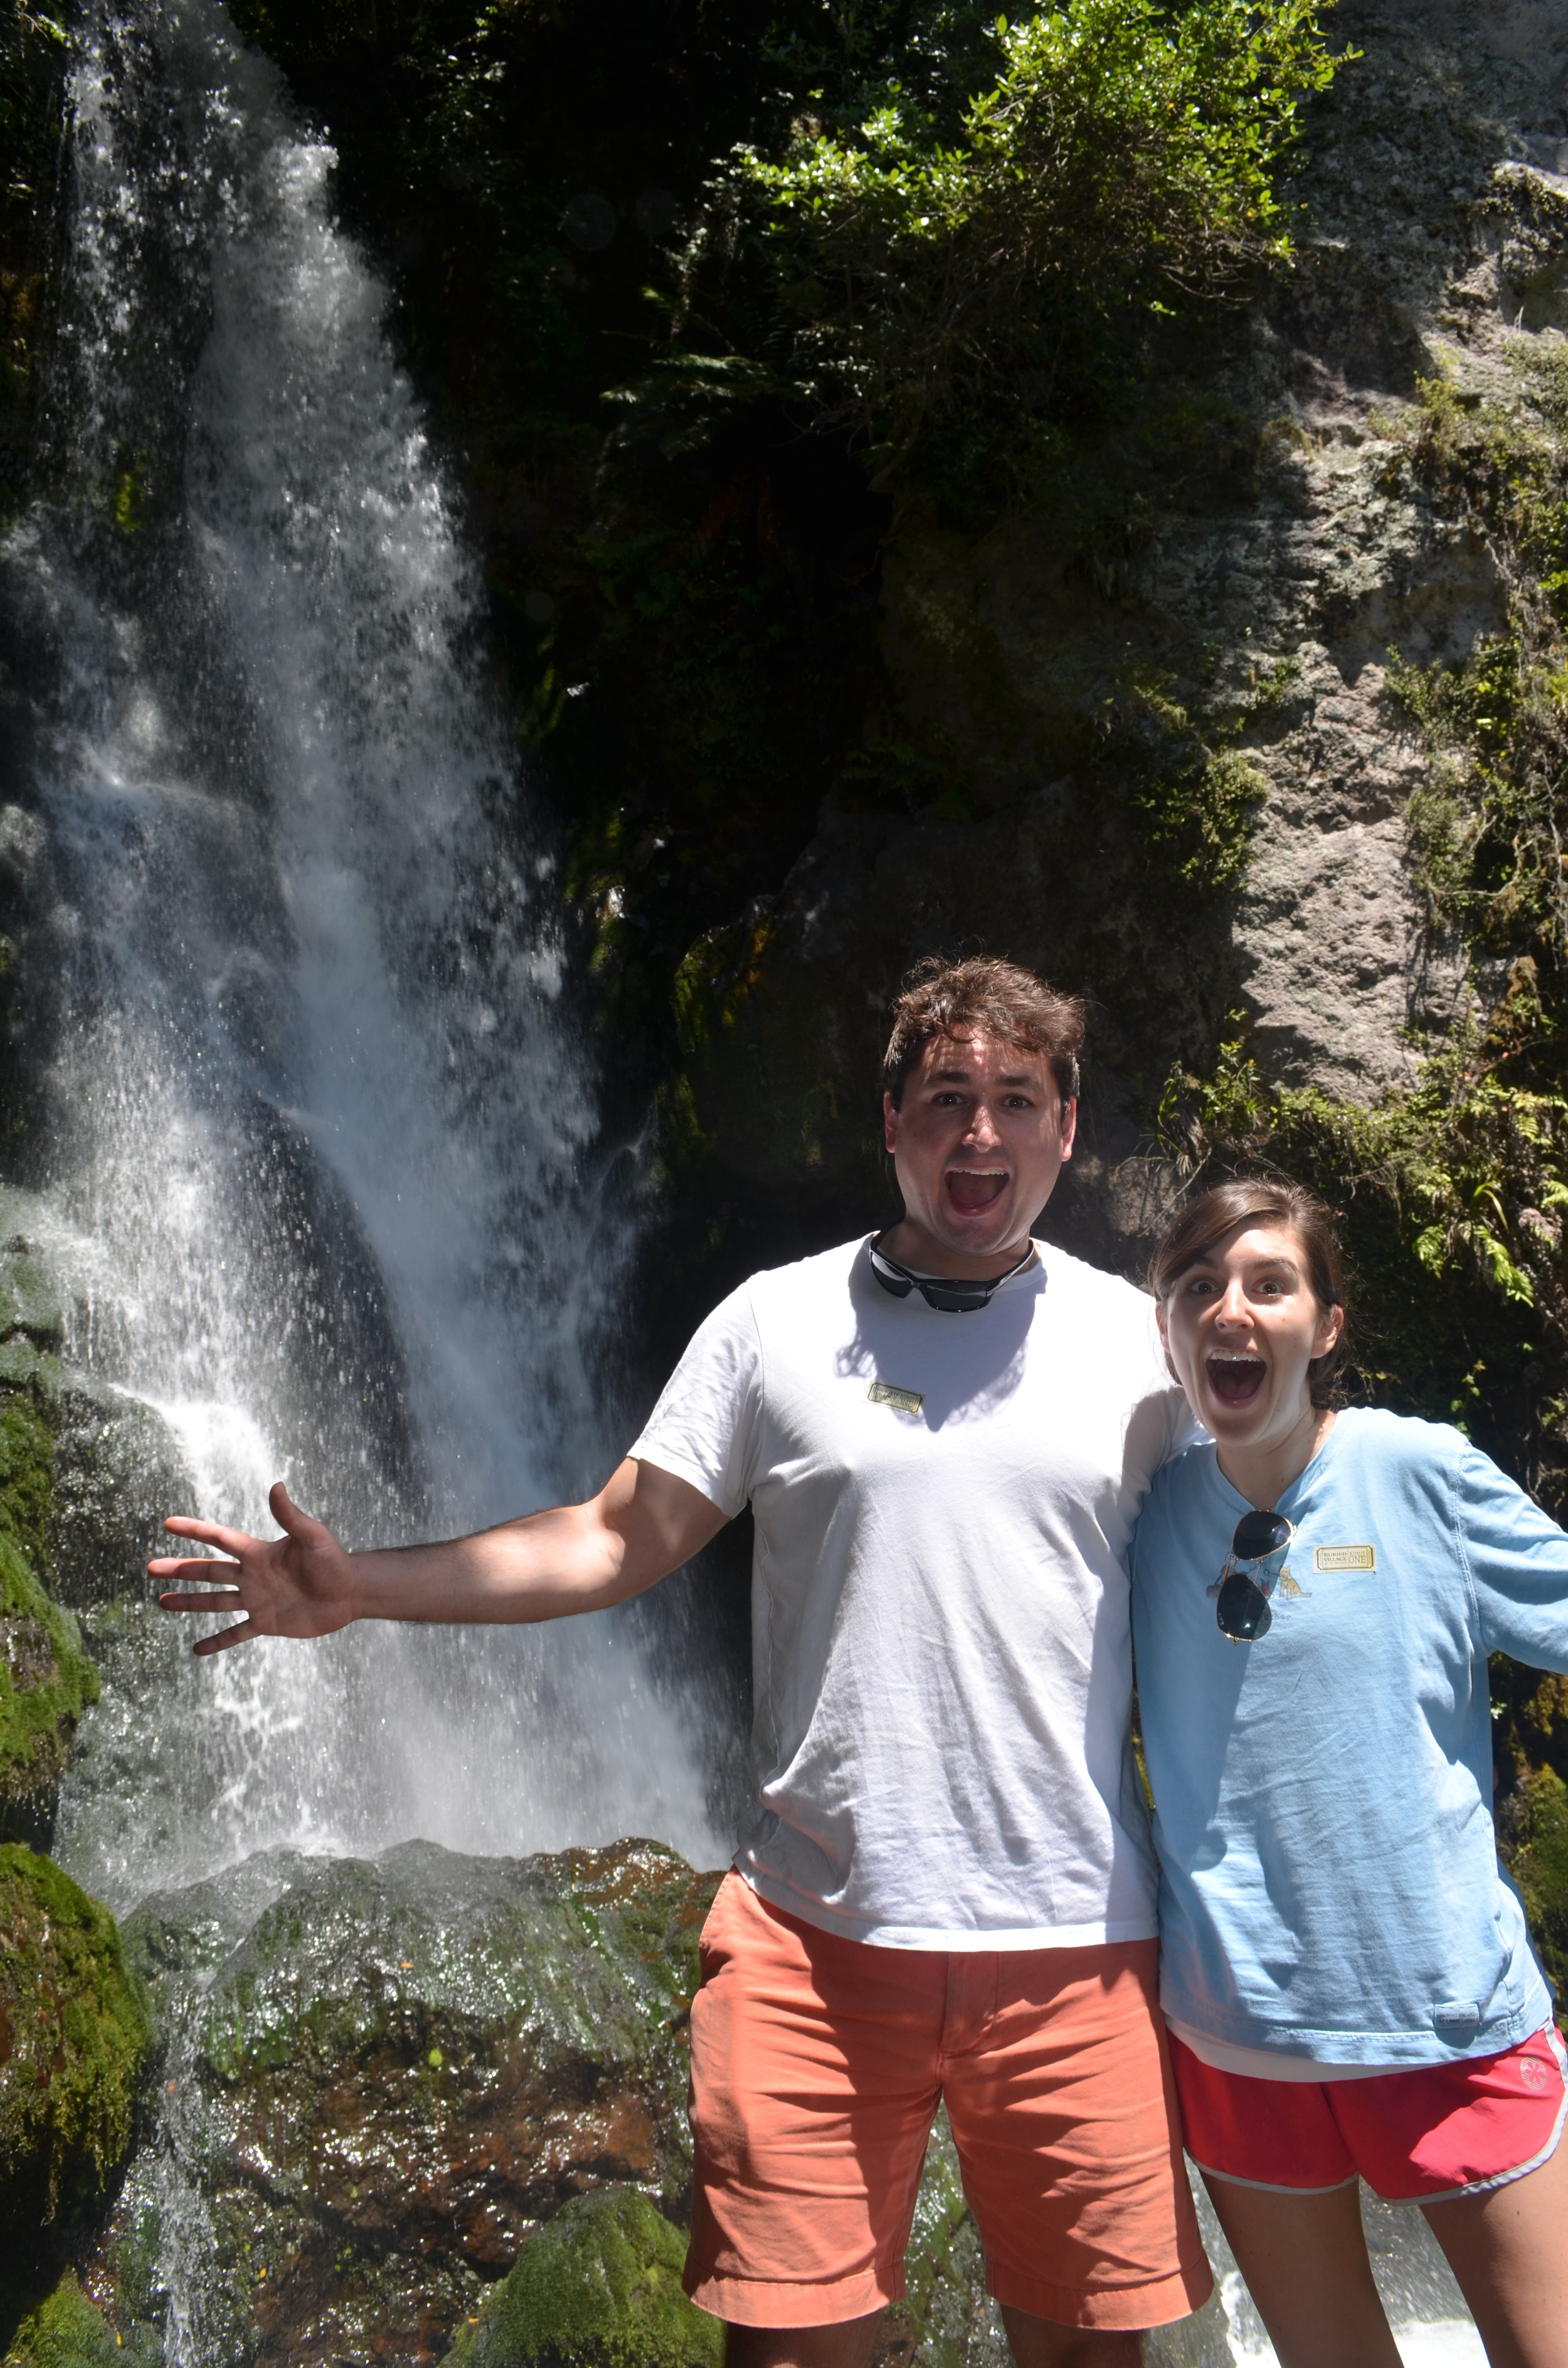 Joe and I being sprayed by the waterfall in the Buried Village.